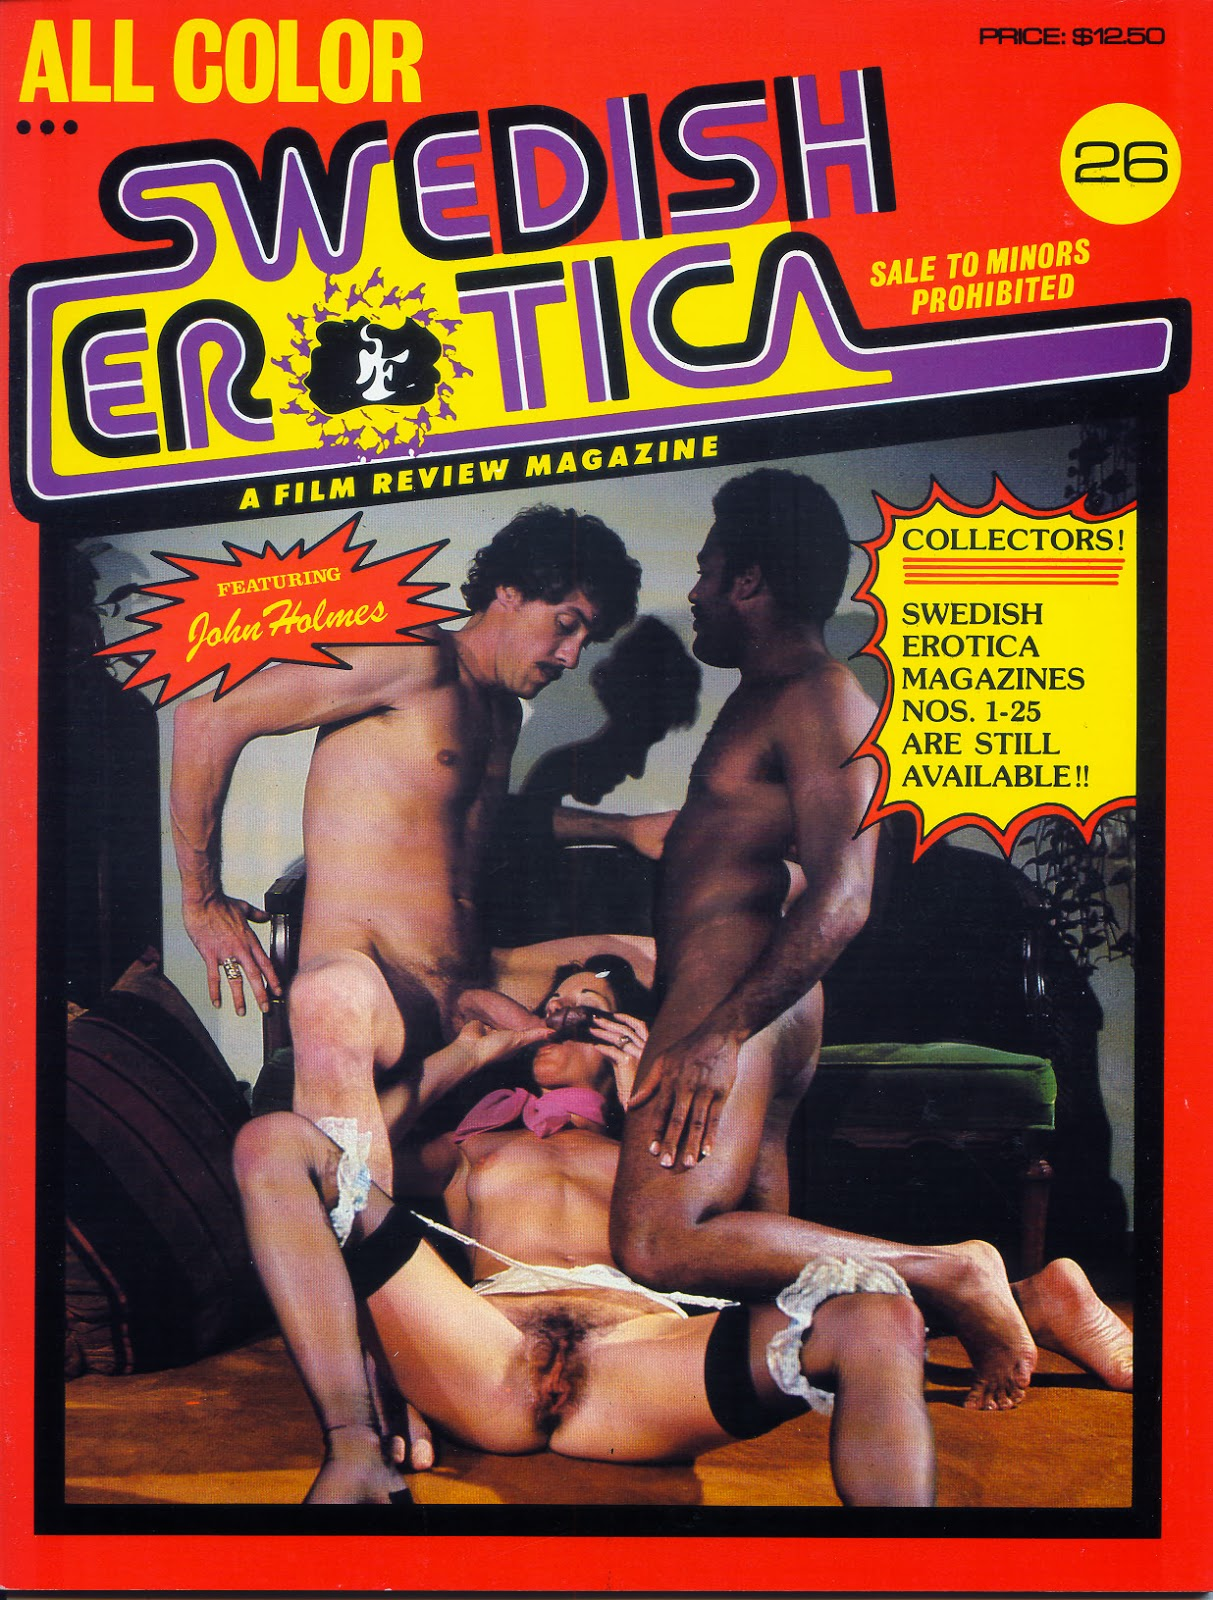 Swedish erotica video review are absolutely